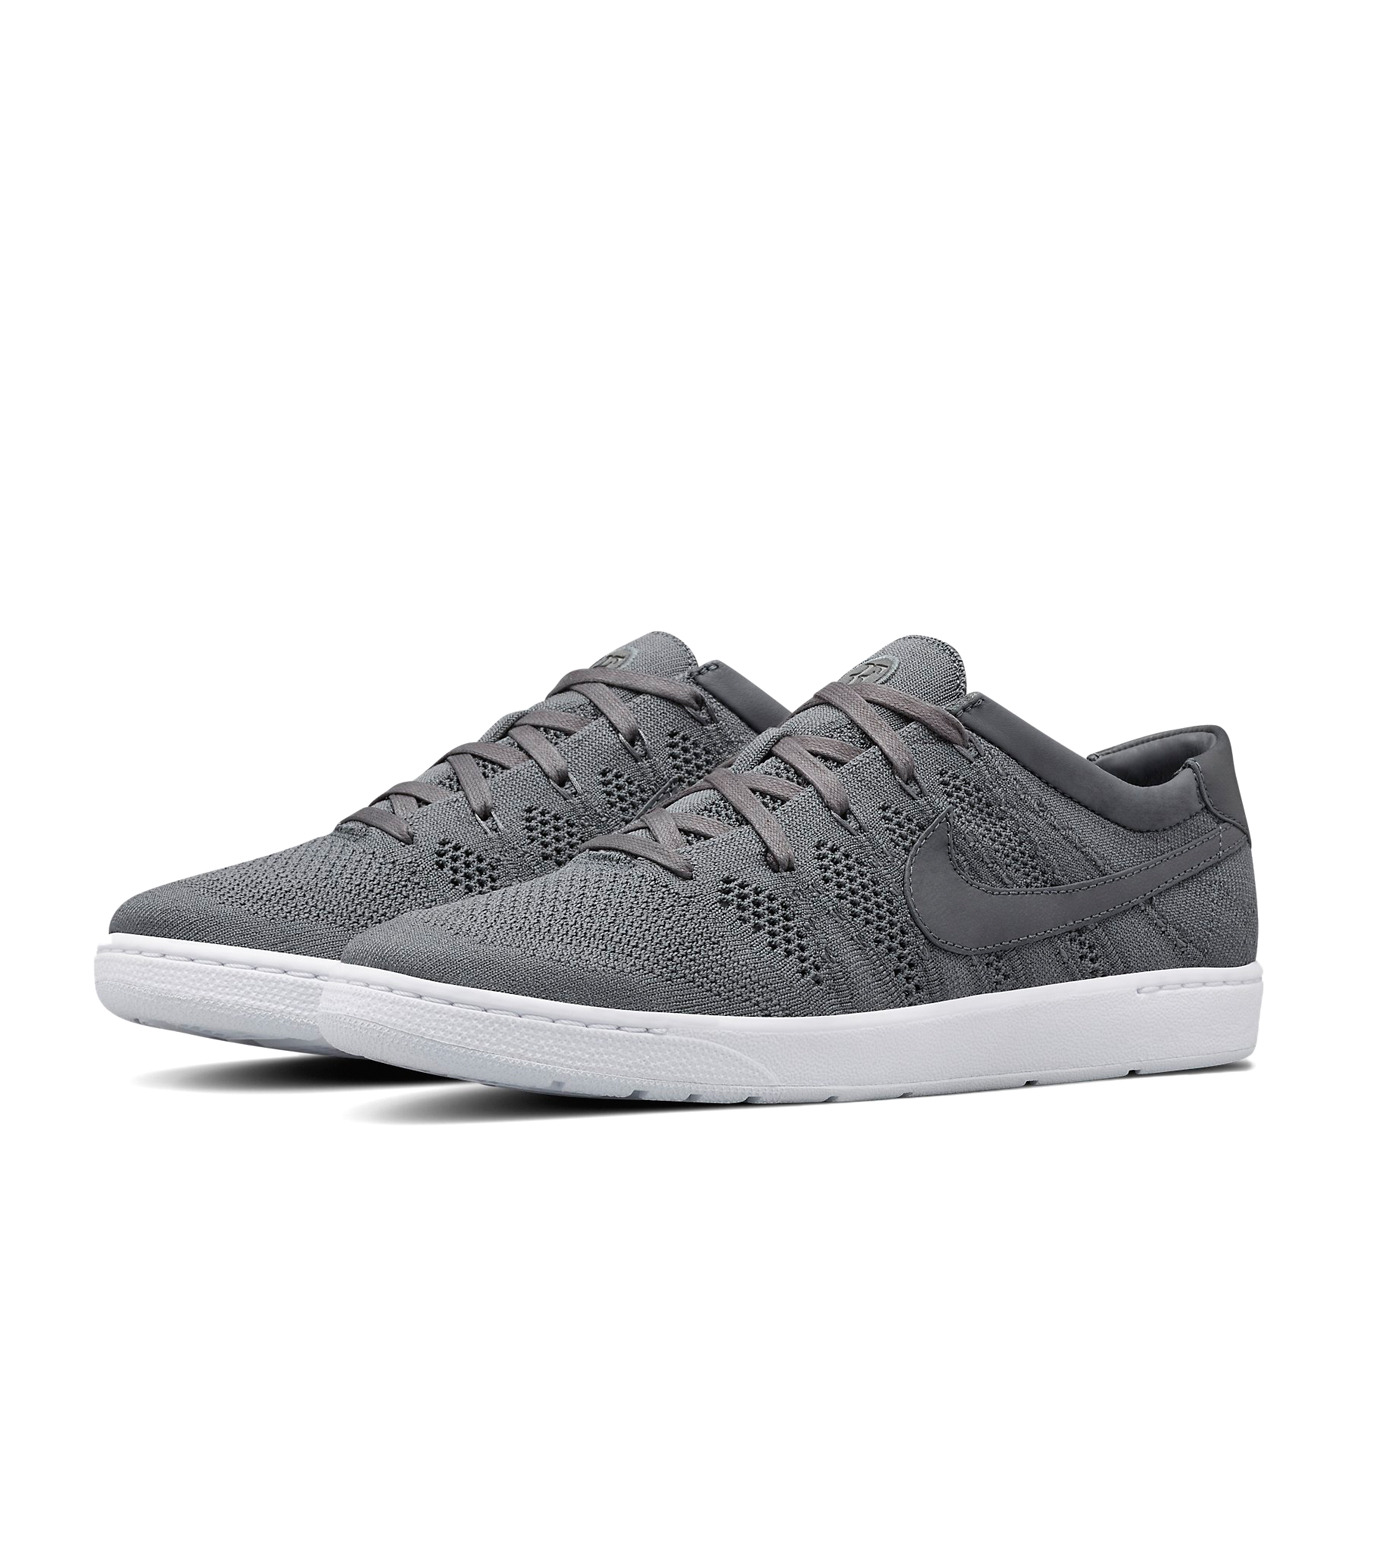 NIKE(ナイキ)のCOURT TENNIS CLASSIC ULTRA FLYKNIT X RF-GRAY(シューズ/shoes)-836360-001-11 拡大詳細画像3